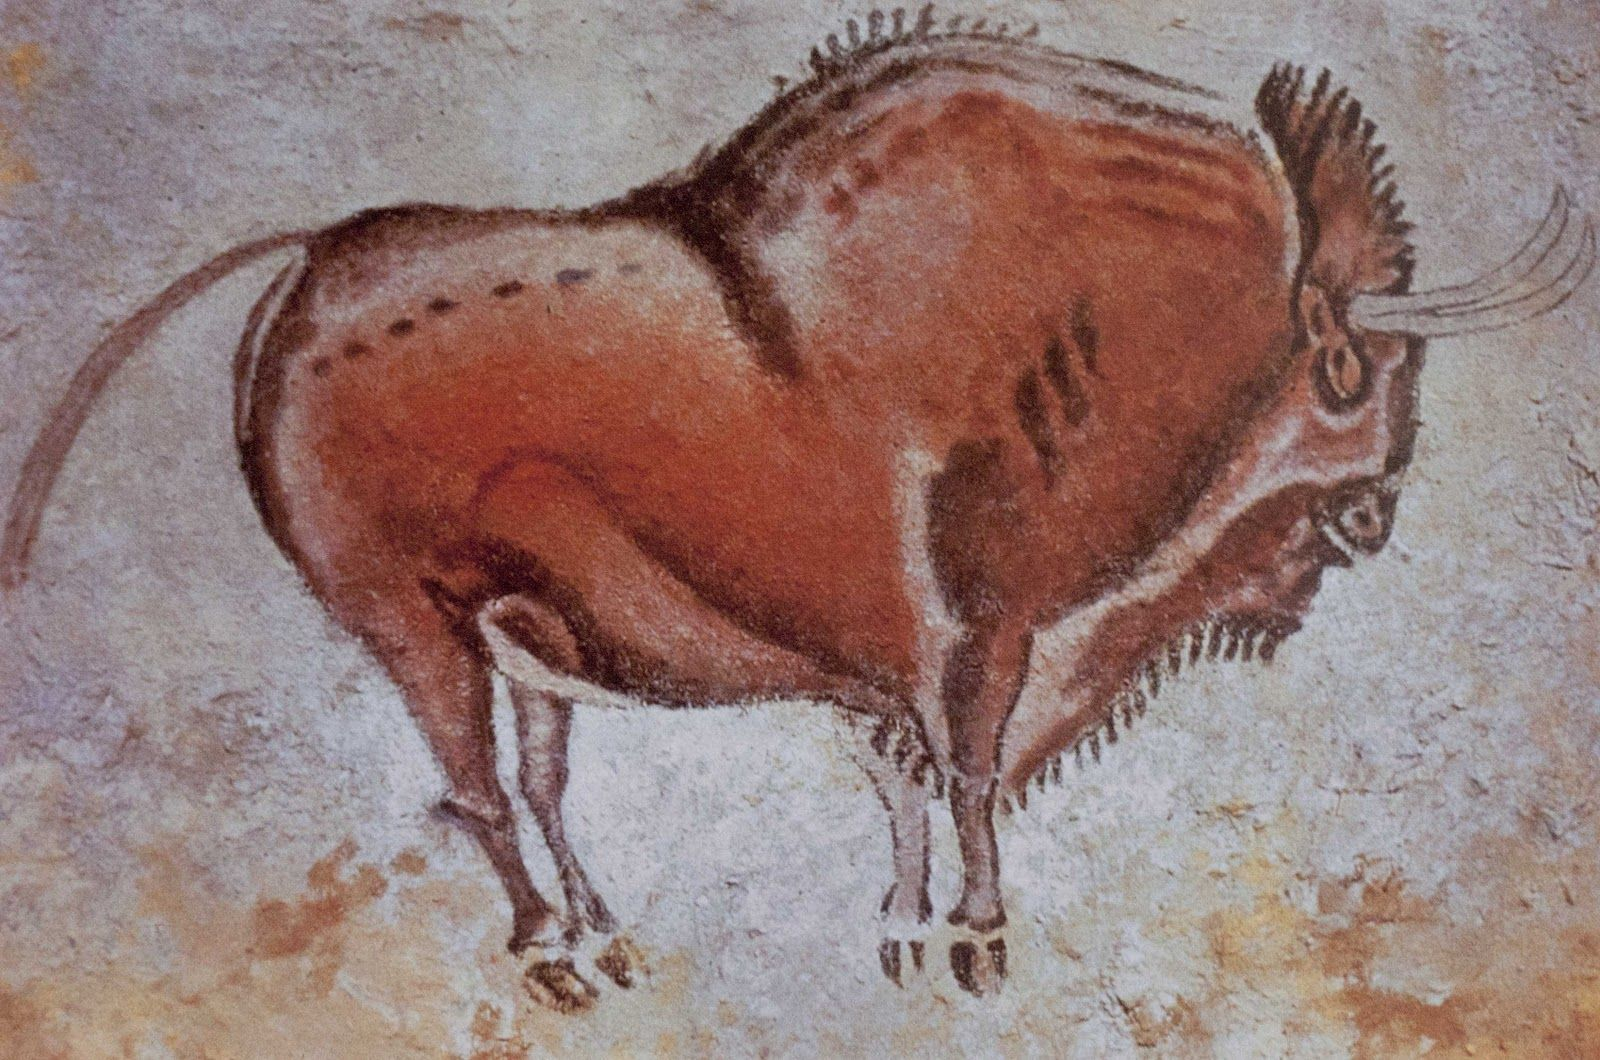 Bison Cave Painting From Altamira Cave Cave Drawings